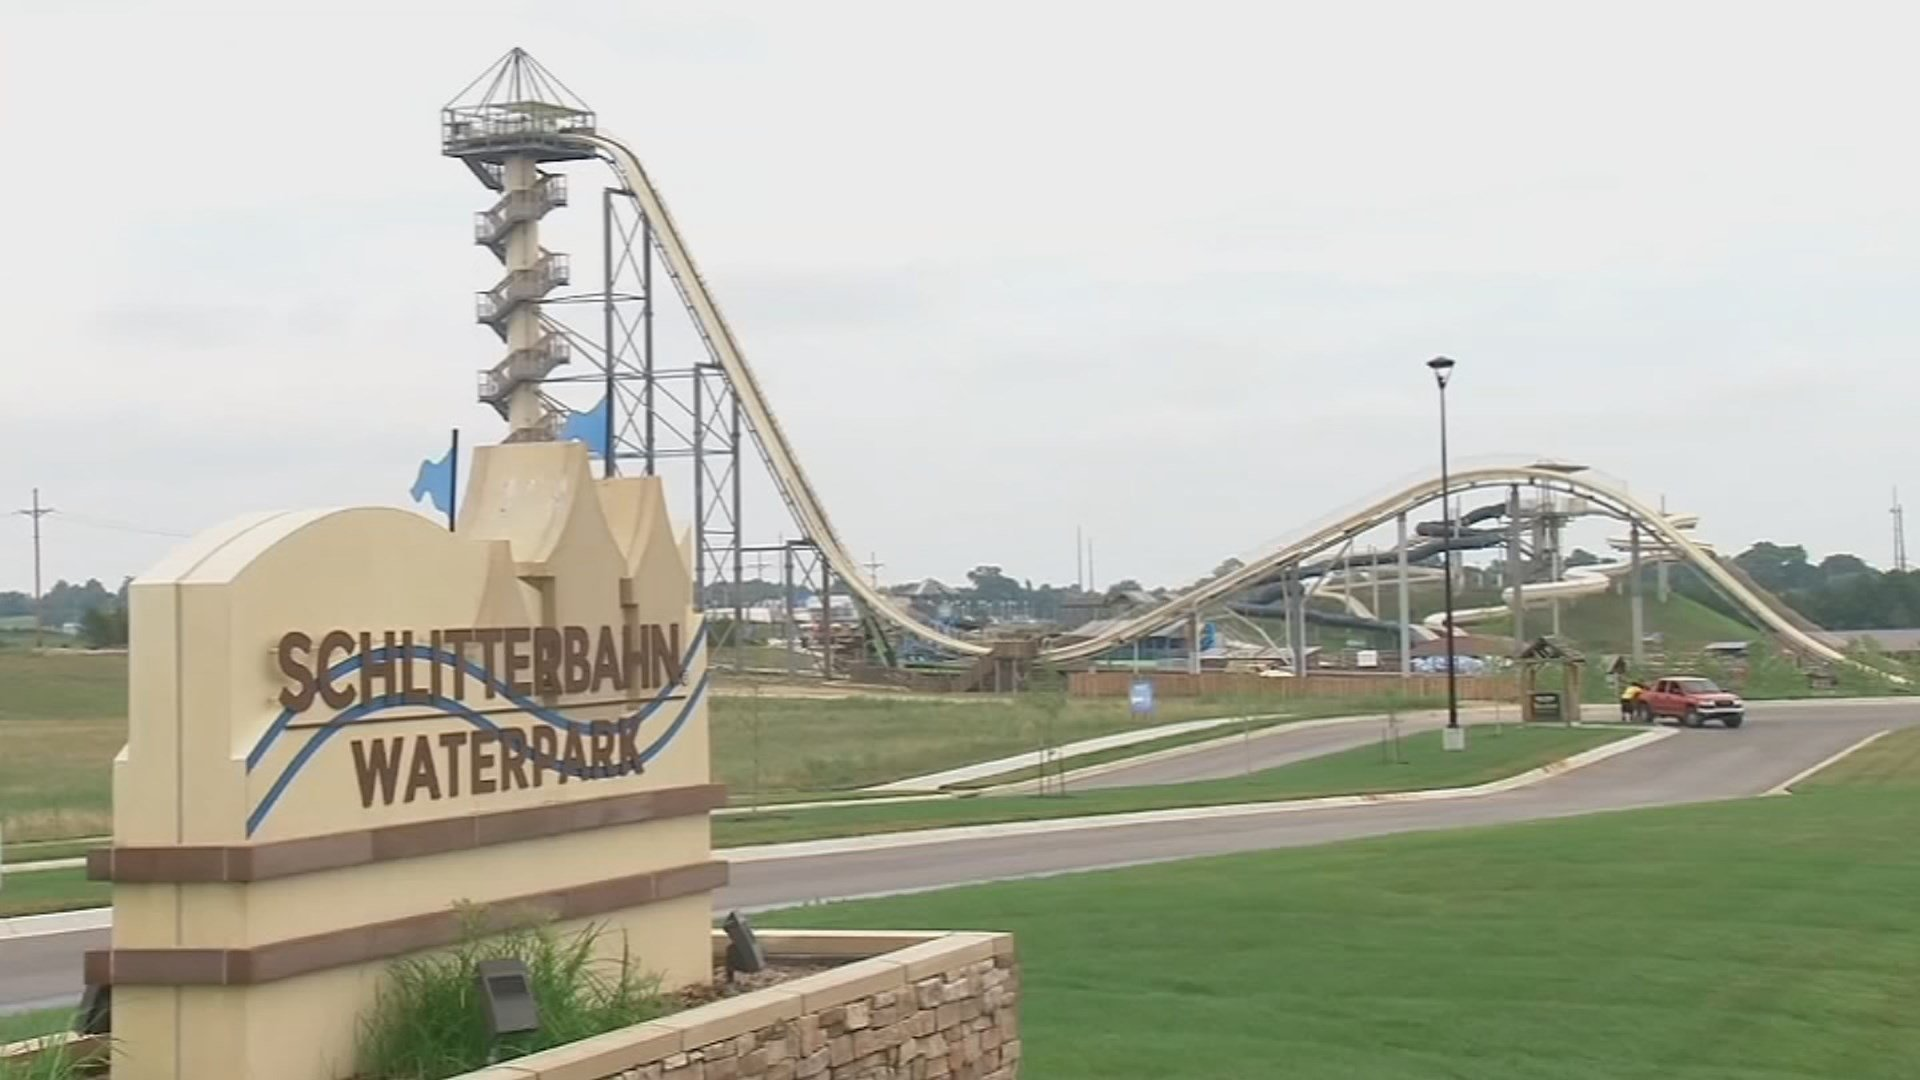 A water park company co-owner accused of rushing the world's tallest waterslide into service and a designer accused of shoddy planning were charged in the decapitation of a 10-year-old boy on the ride in 2016. (KCTV5)